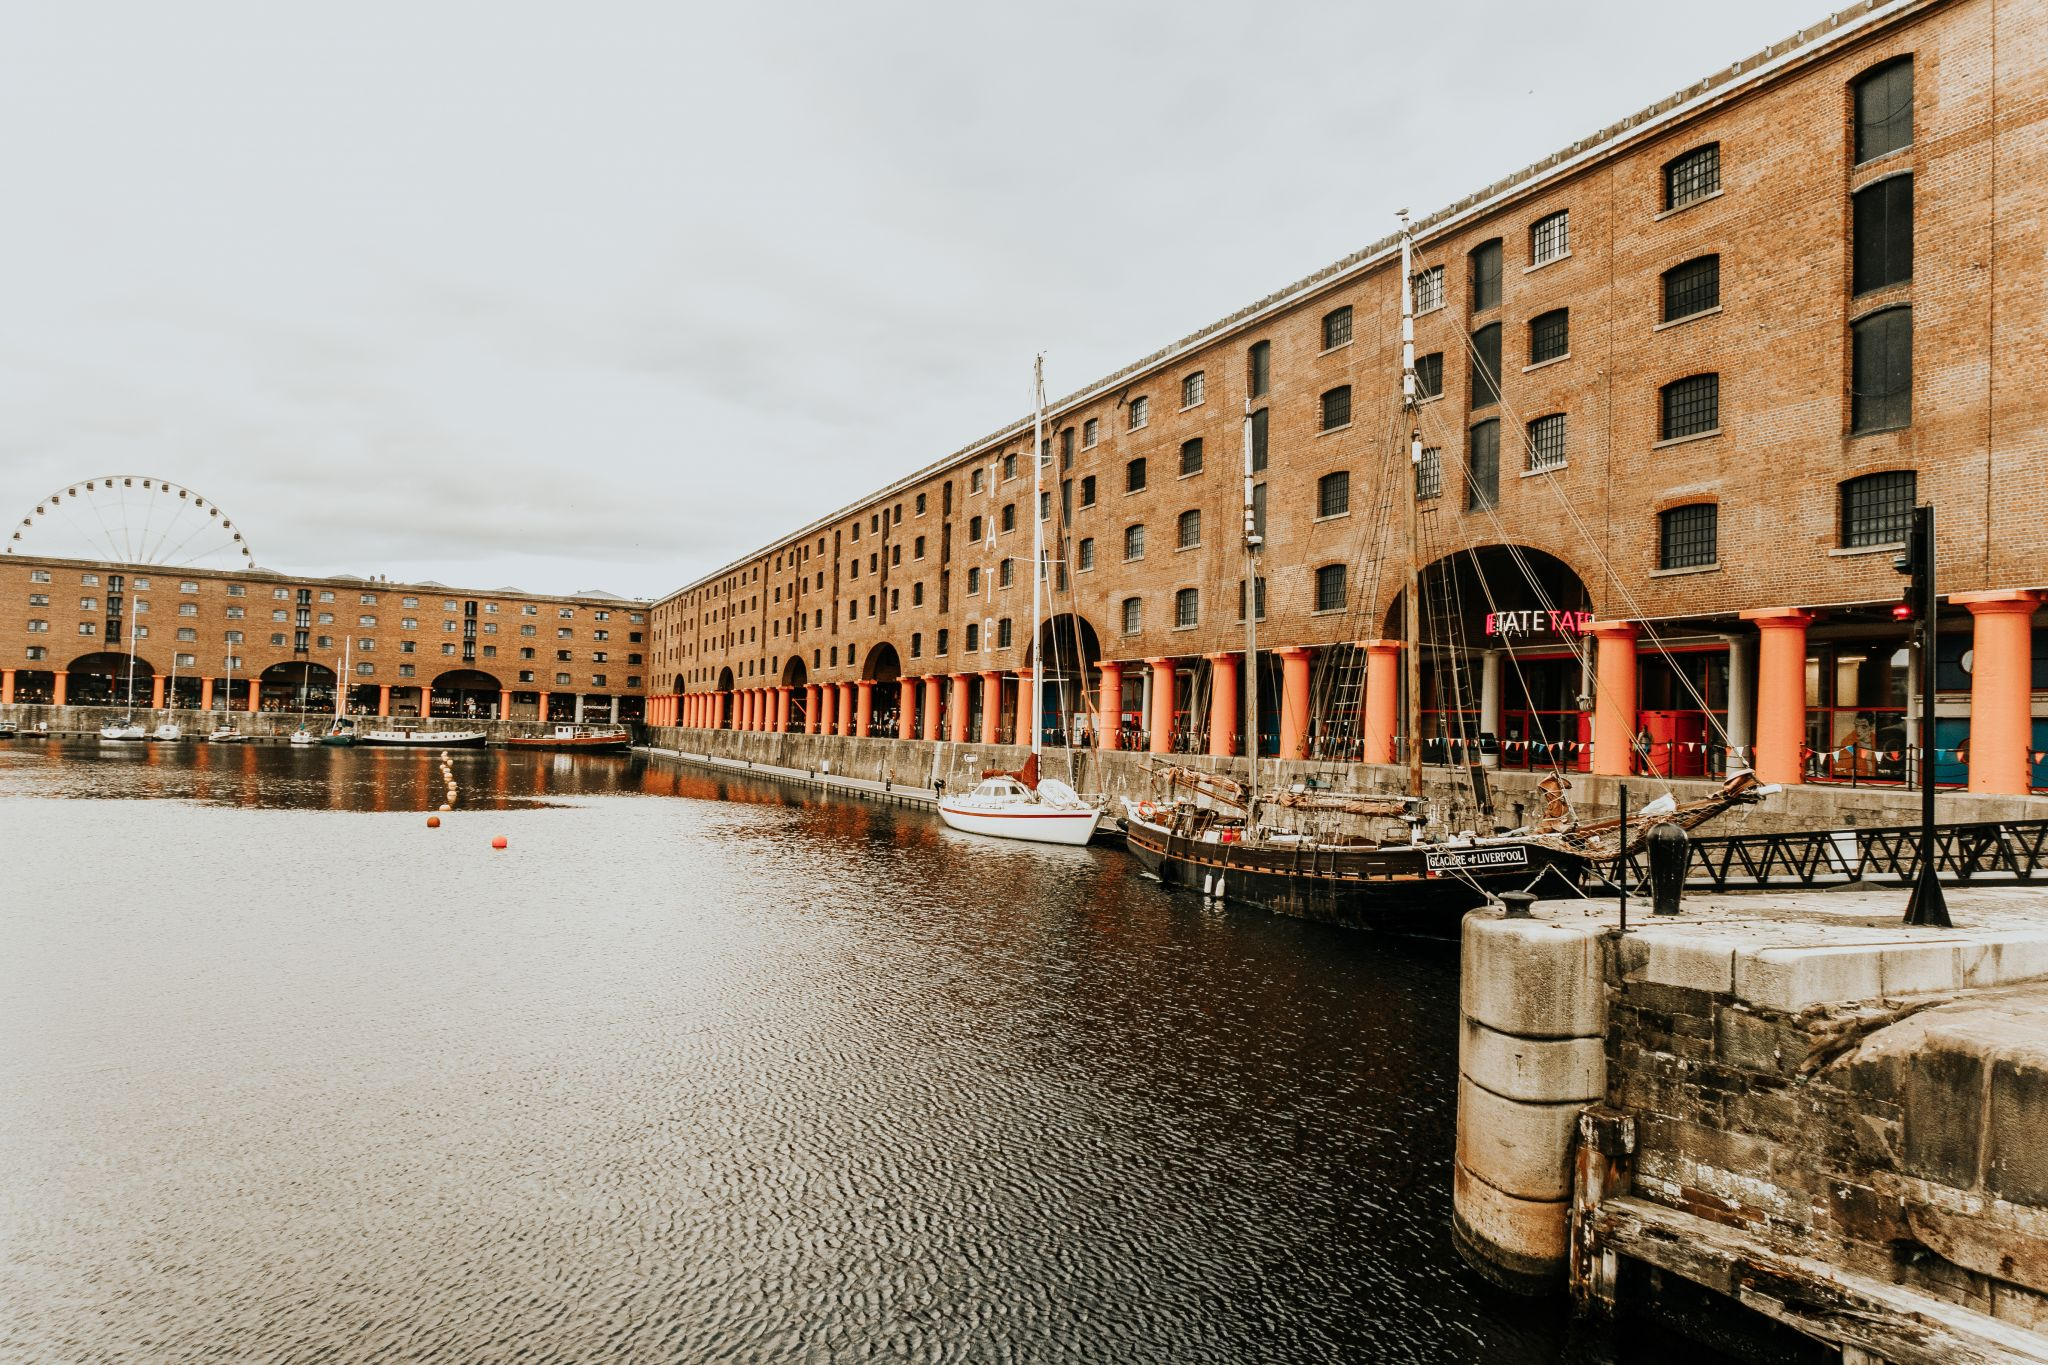 albert docks - SOPHIE EGGLETON (3 of 6)